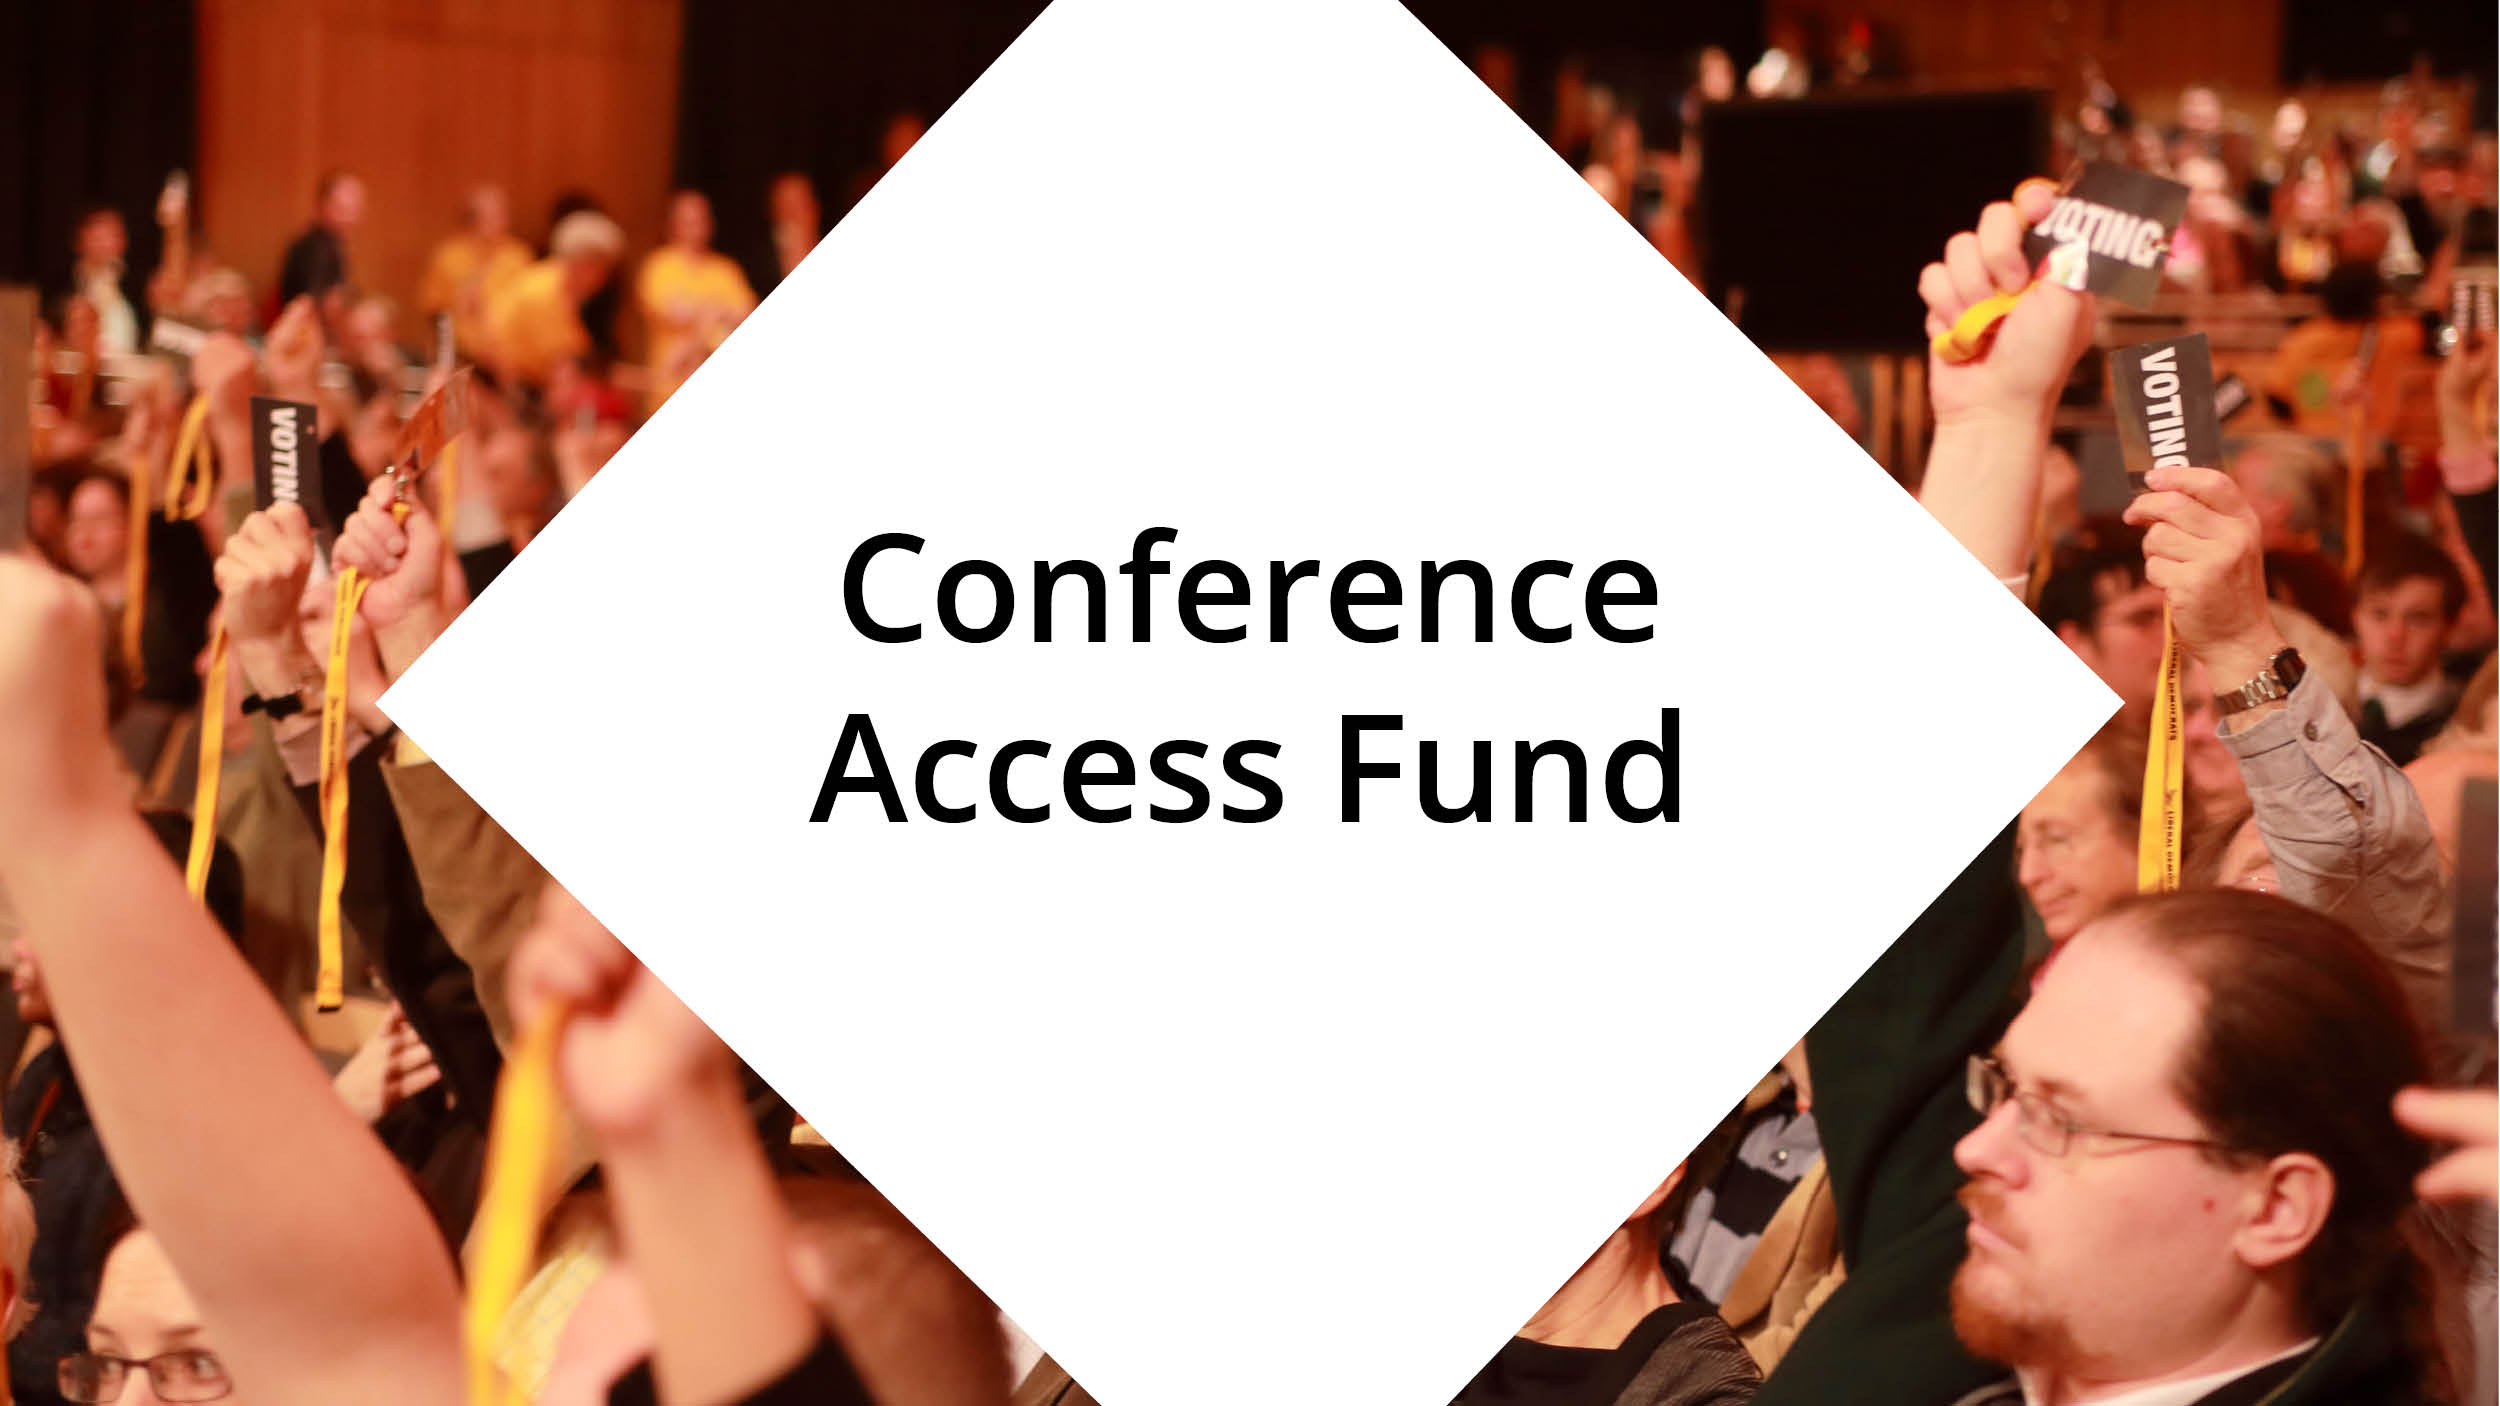 Conference Access Fund